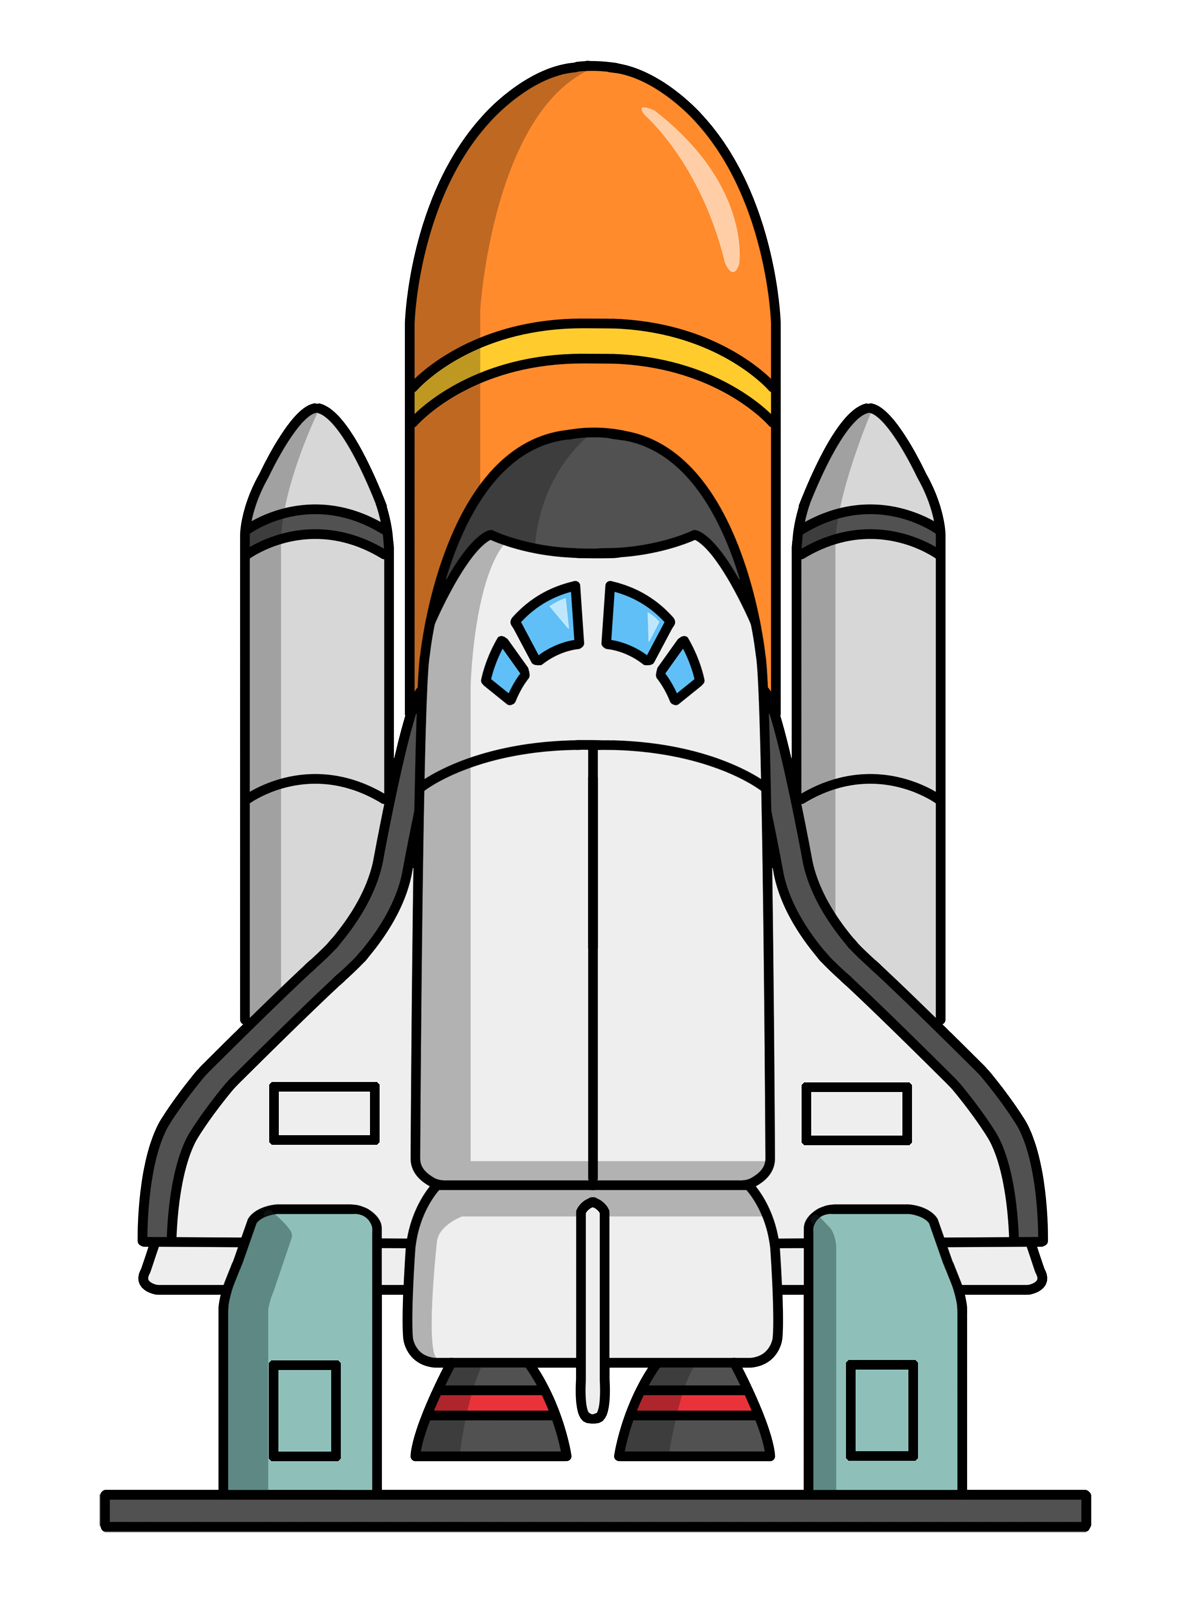 Space Shuttle Clip Art   Images   Free For Commercial Use